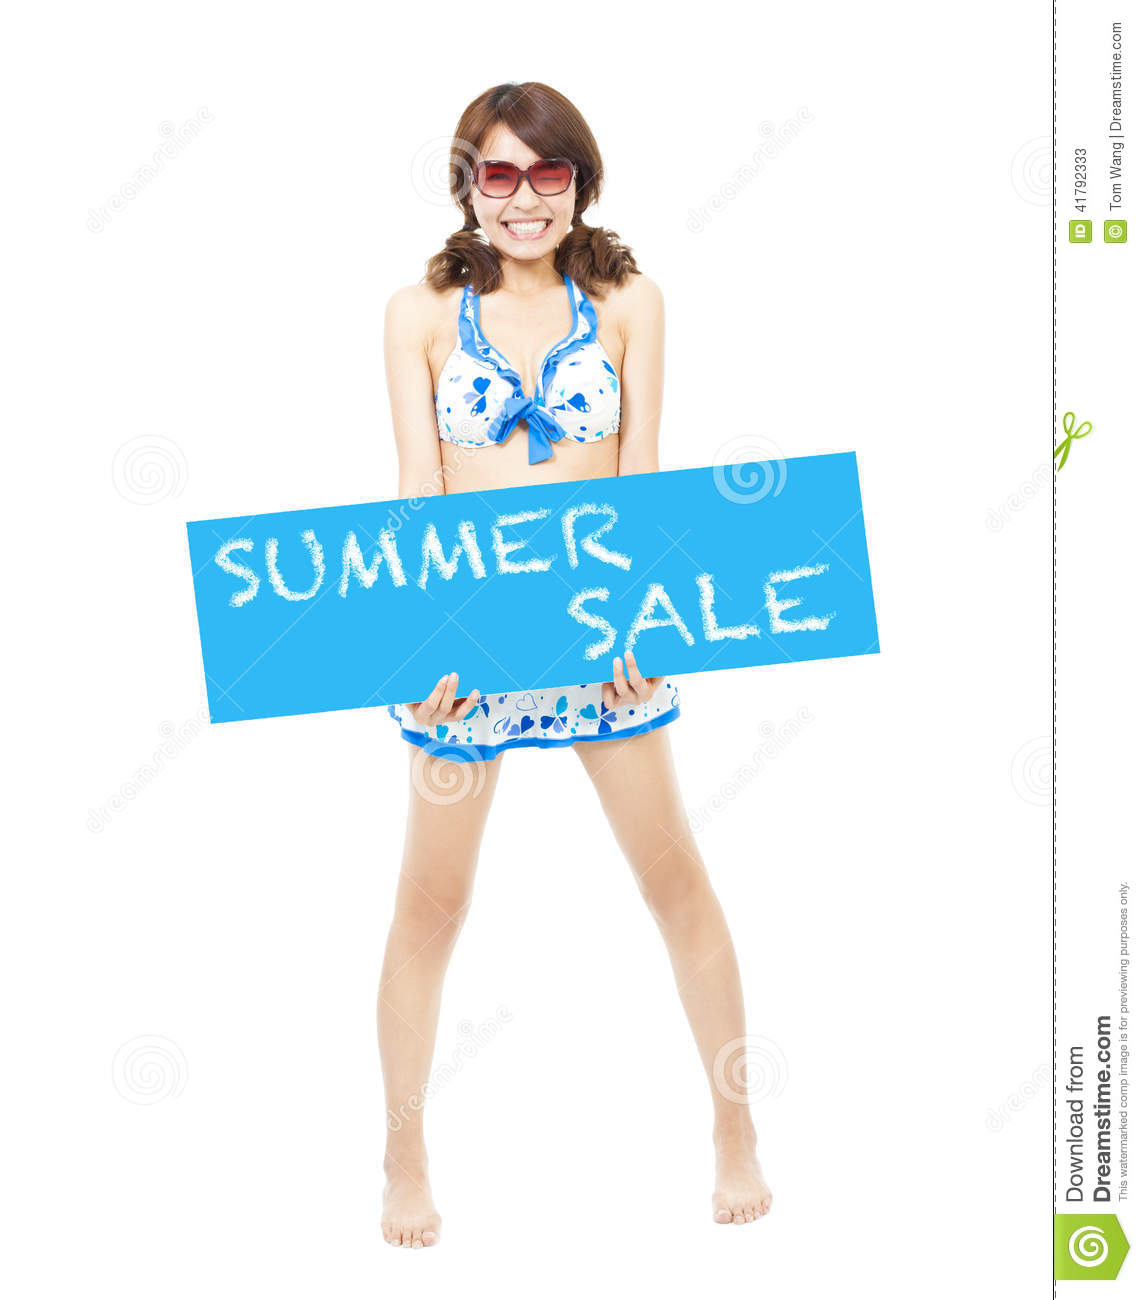 bikini girl holding a sign of summer sale stock photo image 41792333. Black Bedroom Furniture Sets. Home Design Ideas